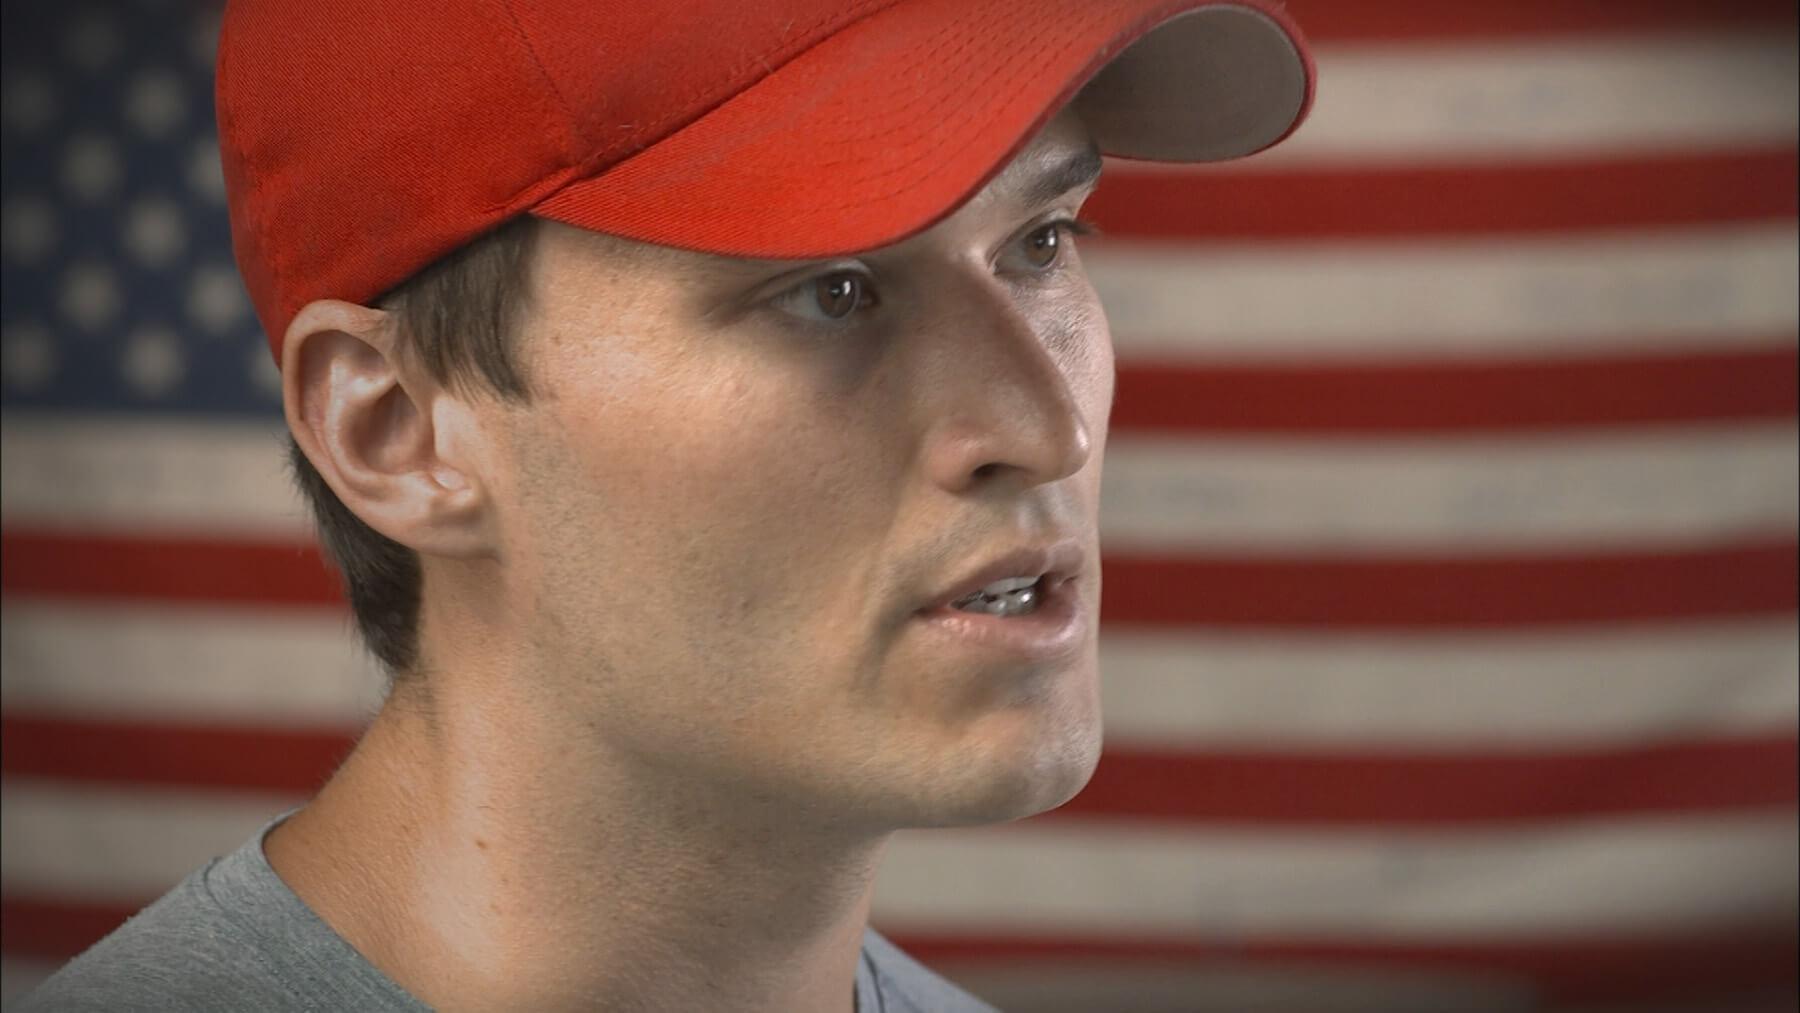 Video outlines how being a Marine prepared Jake Wood to co-found Team Rubicon.